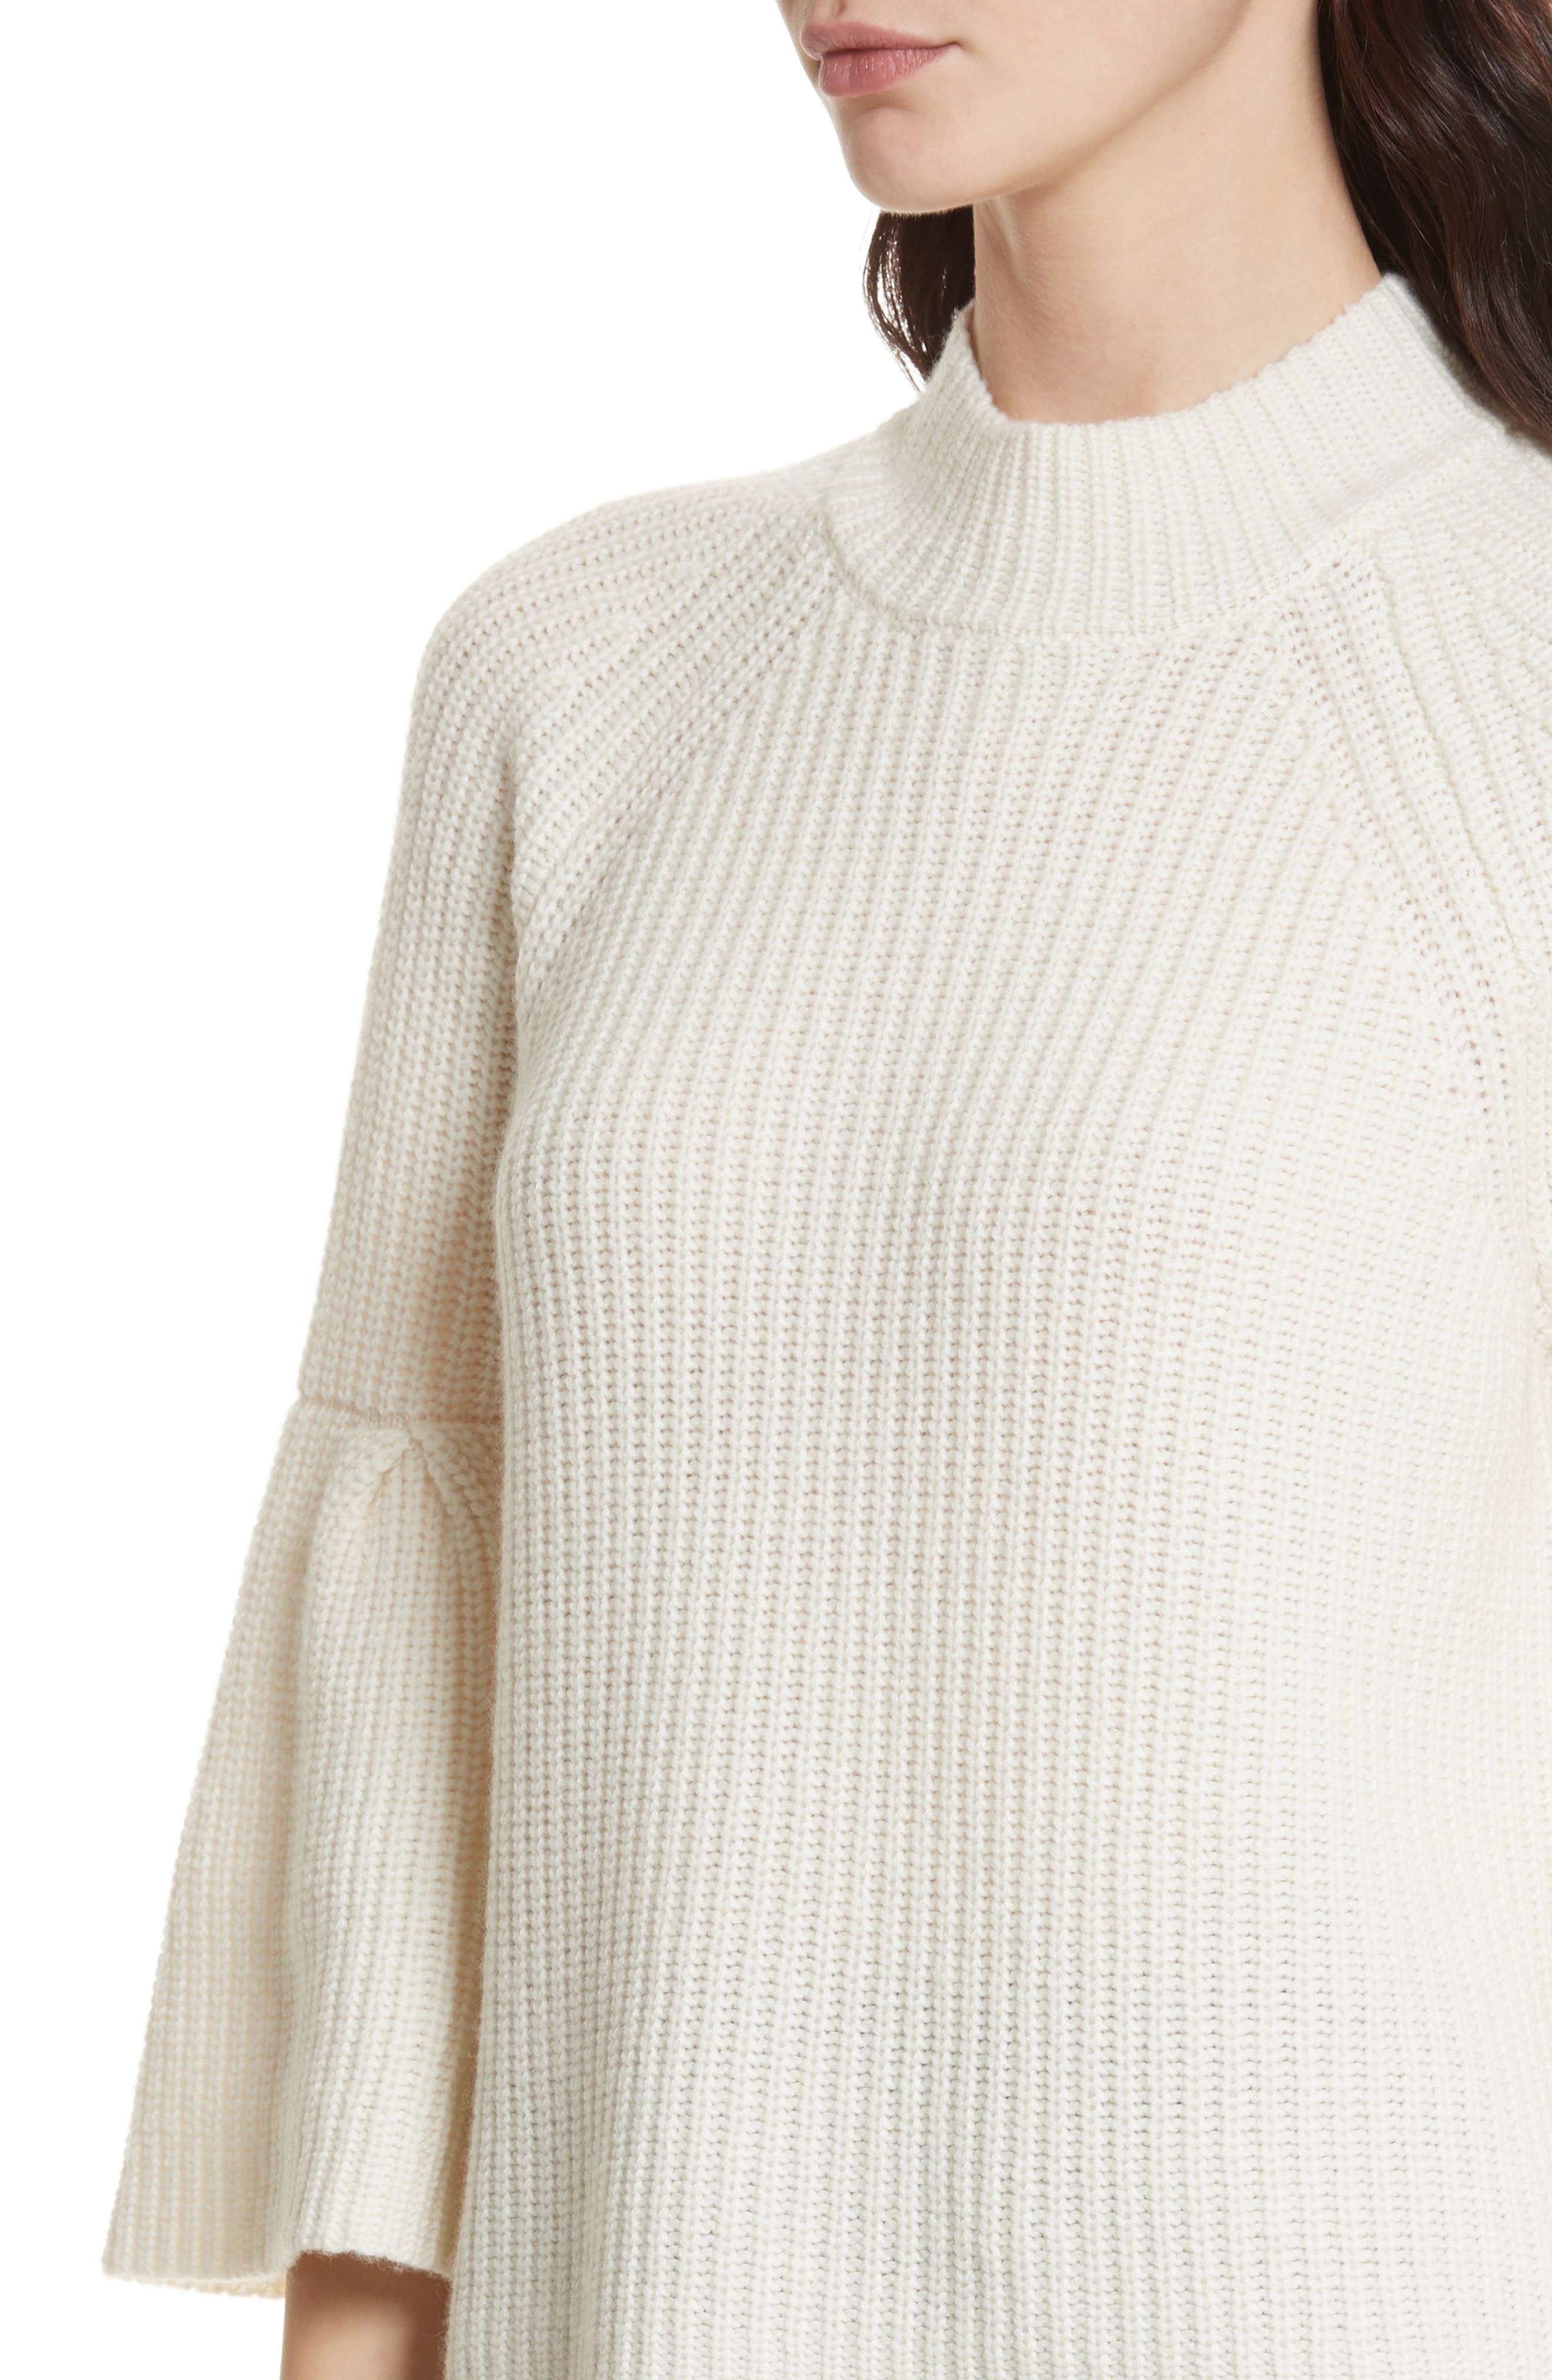 Ingrit Wool & Cashmere Sweater,                             Alternate thumbnail 4, color,                             114